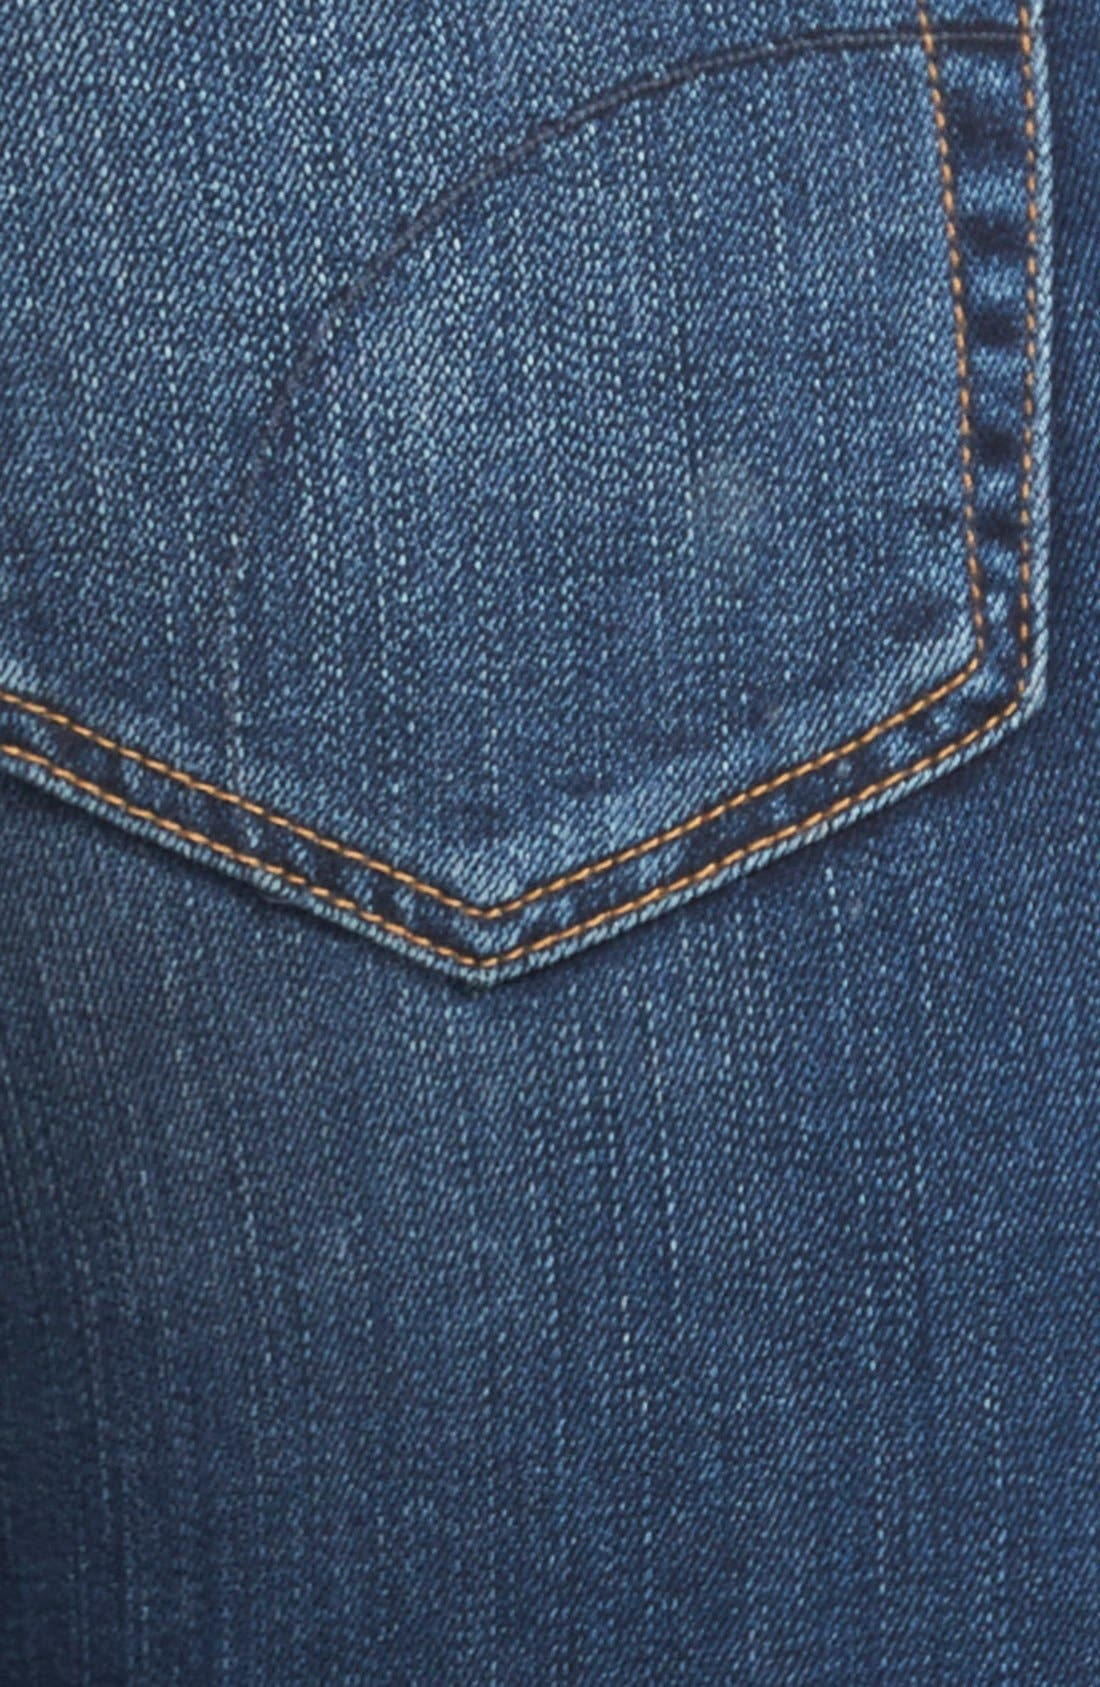 'Flawless - Icon' Flare Jeans,                             Alternate thumbnail 2, color,                             400